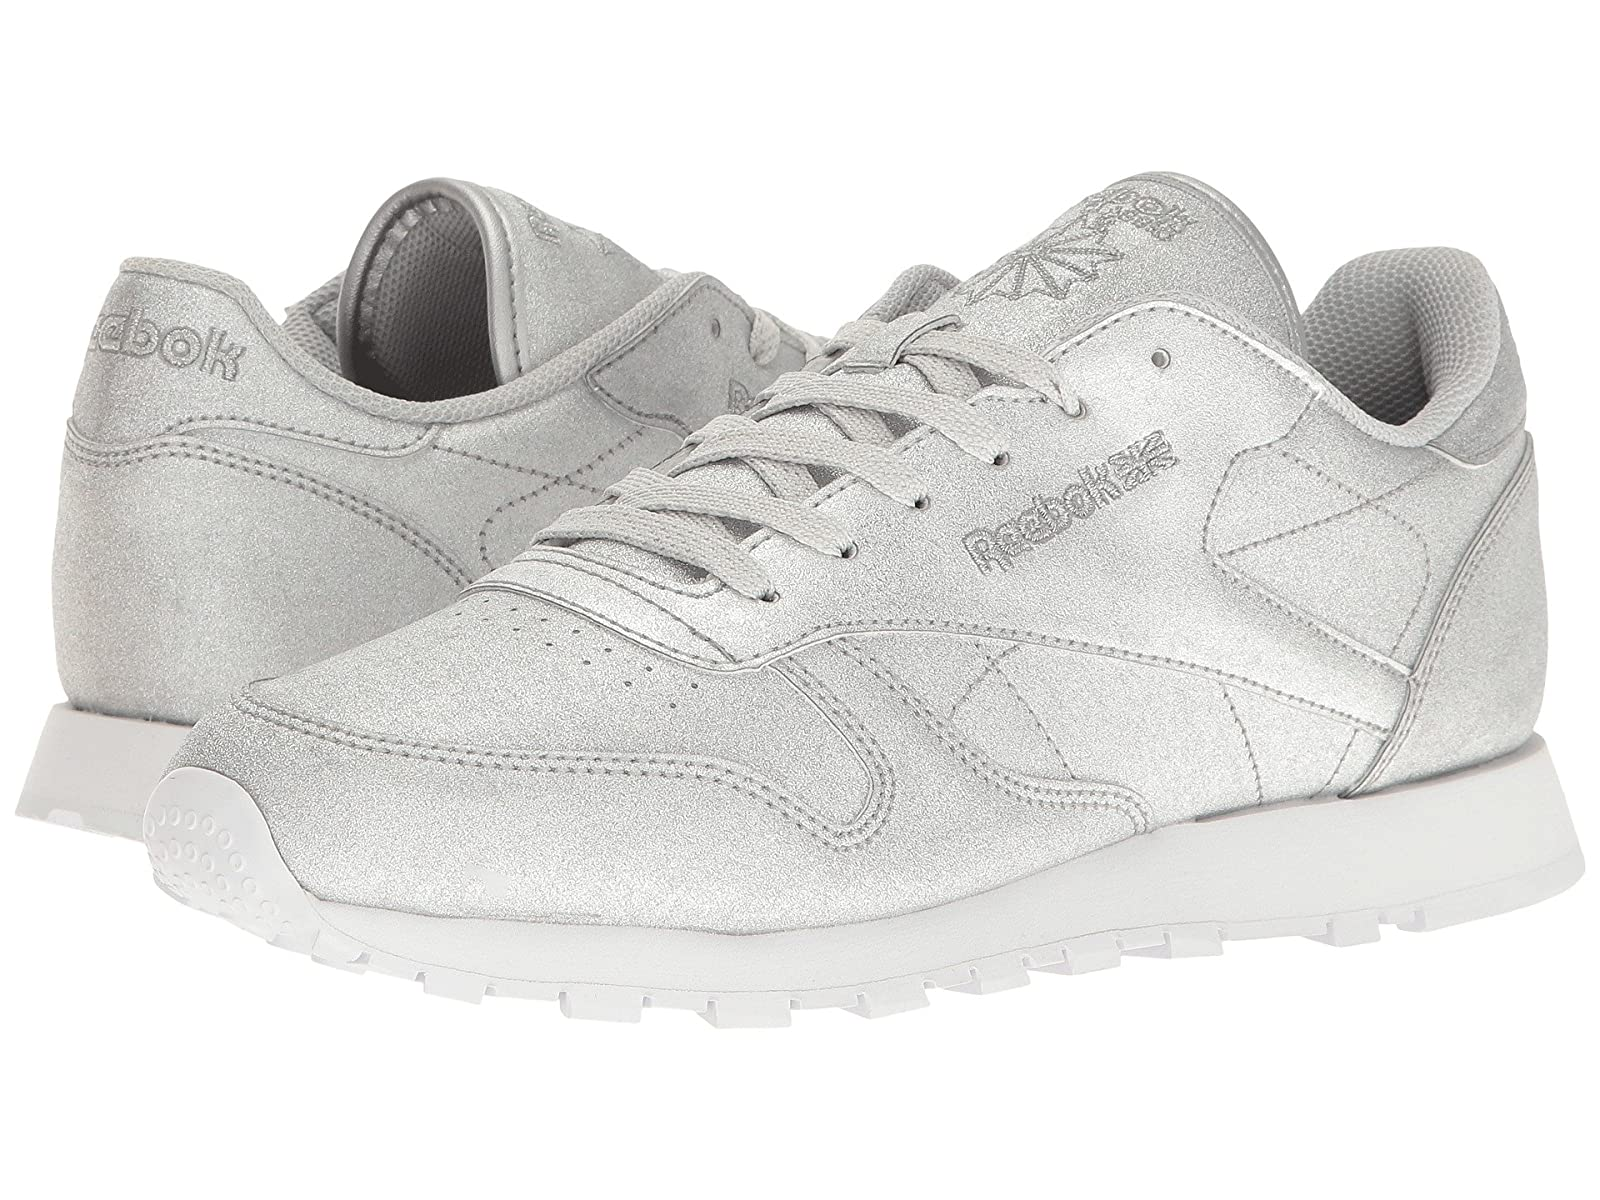 Reebok Lifestyle Classic Leather SynCheap and distinctive eye-catching shoes